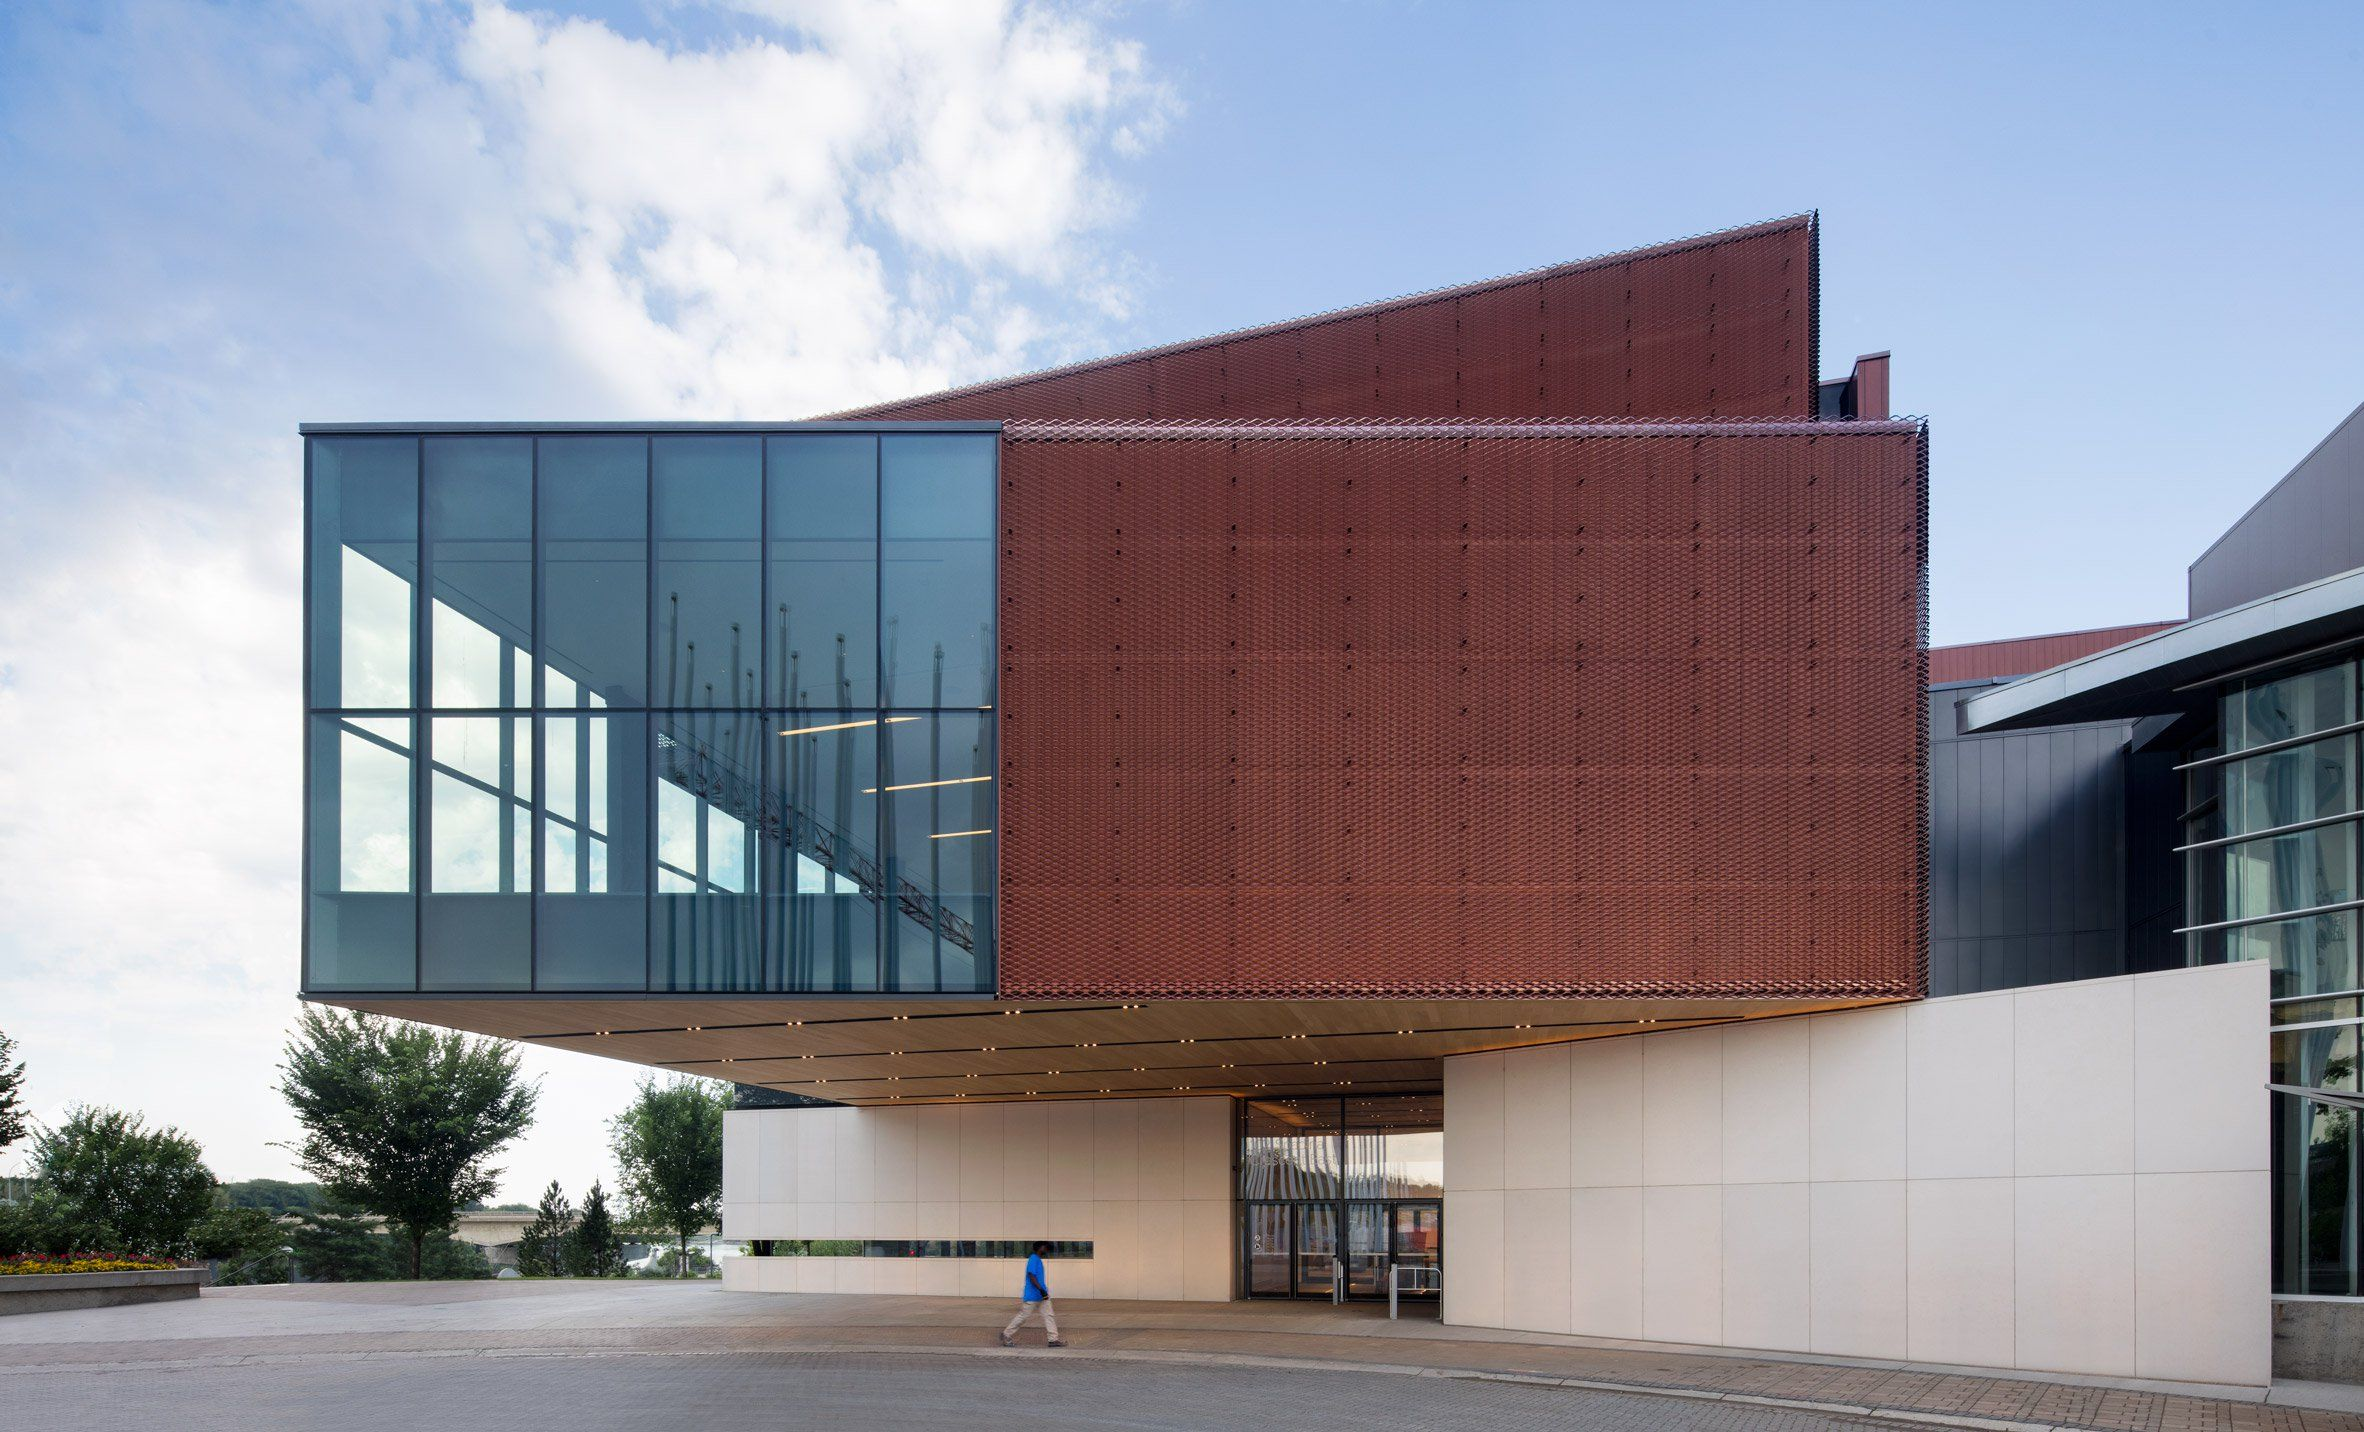 Kpmb Architects Has Completed A Contemporary Art Gallery And Museum On The Riverside In Saskato Museum Architecture Museum Of Modern Art Galleries Architecture